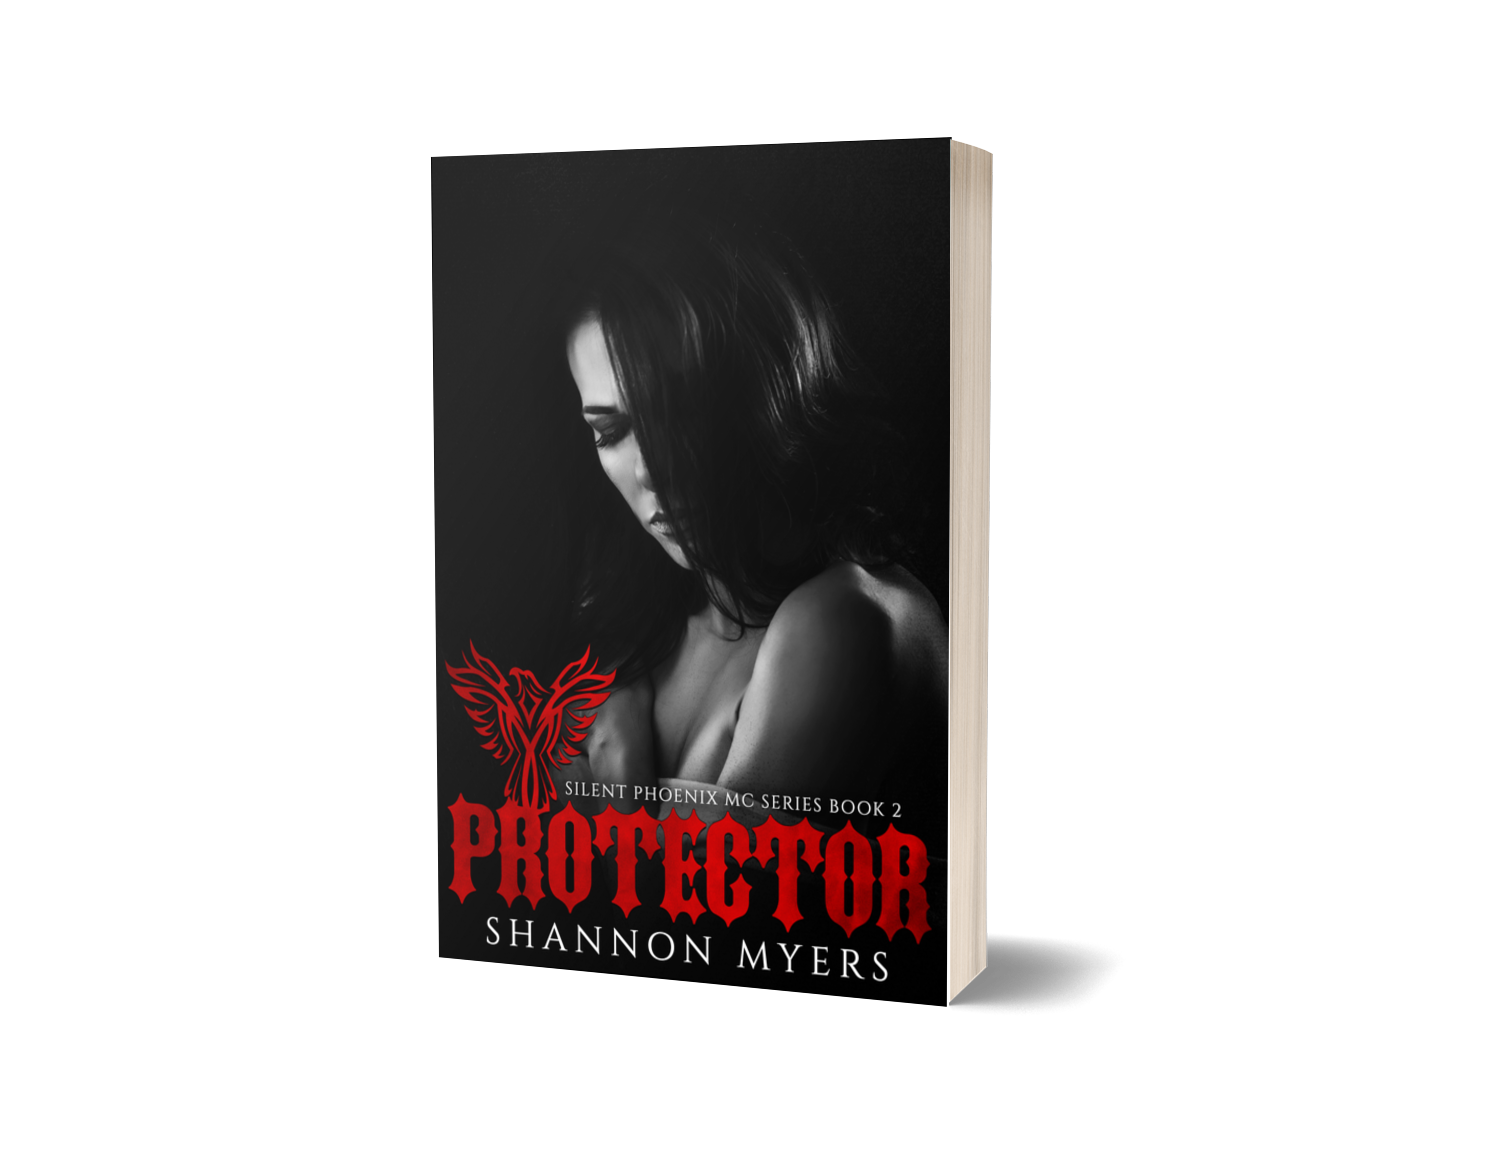 Protector (SPMC Series Book 2)